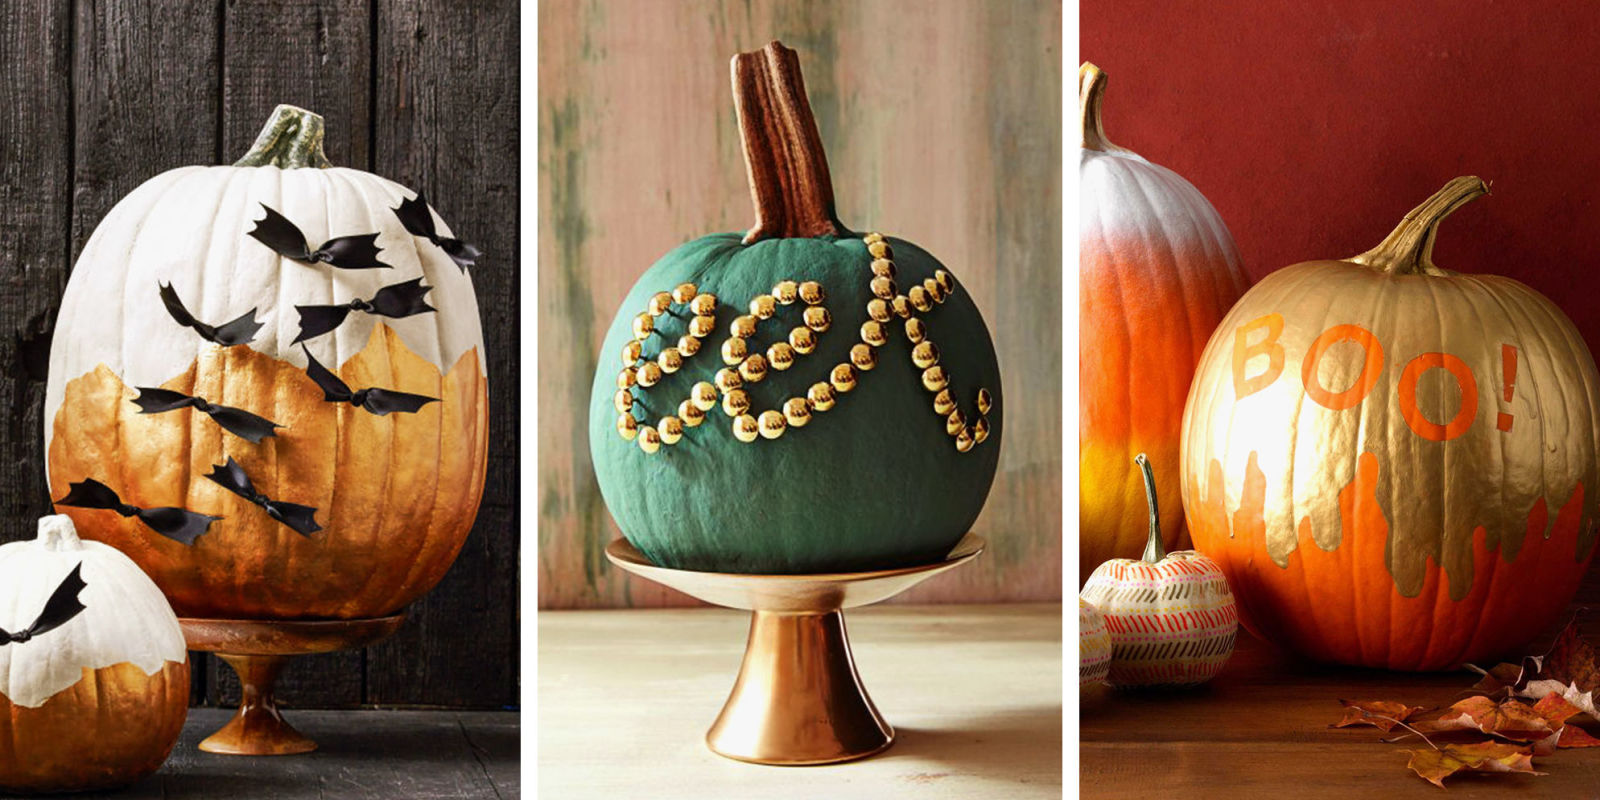 15 best pumpkin decorating ideas for halloween 2017 no carve pumpkin decorating ideas - Pumpkin Decor